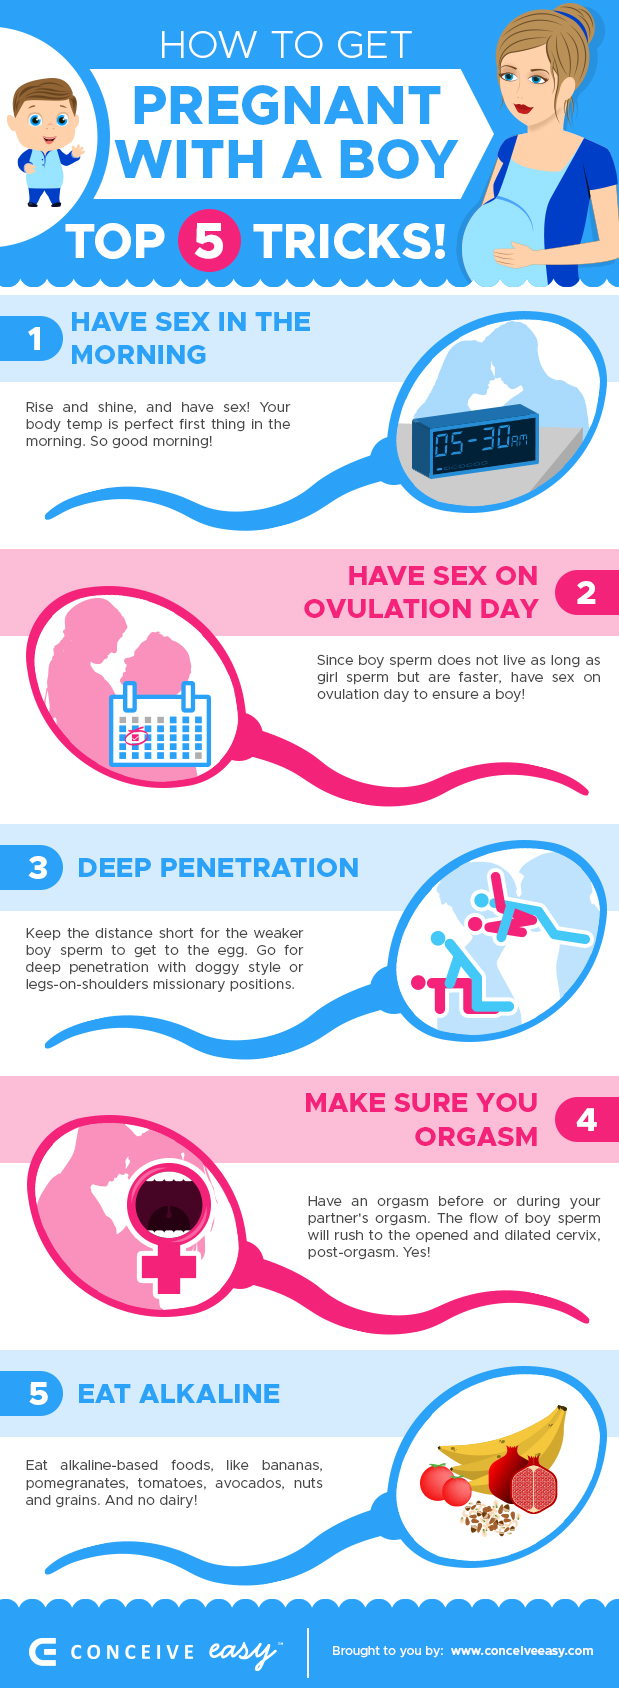 5 tricks on how to get pregnant with a boy infographic